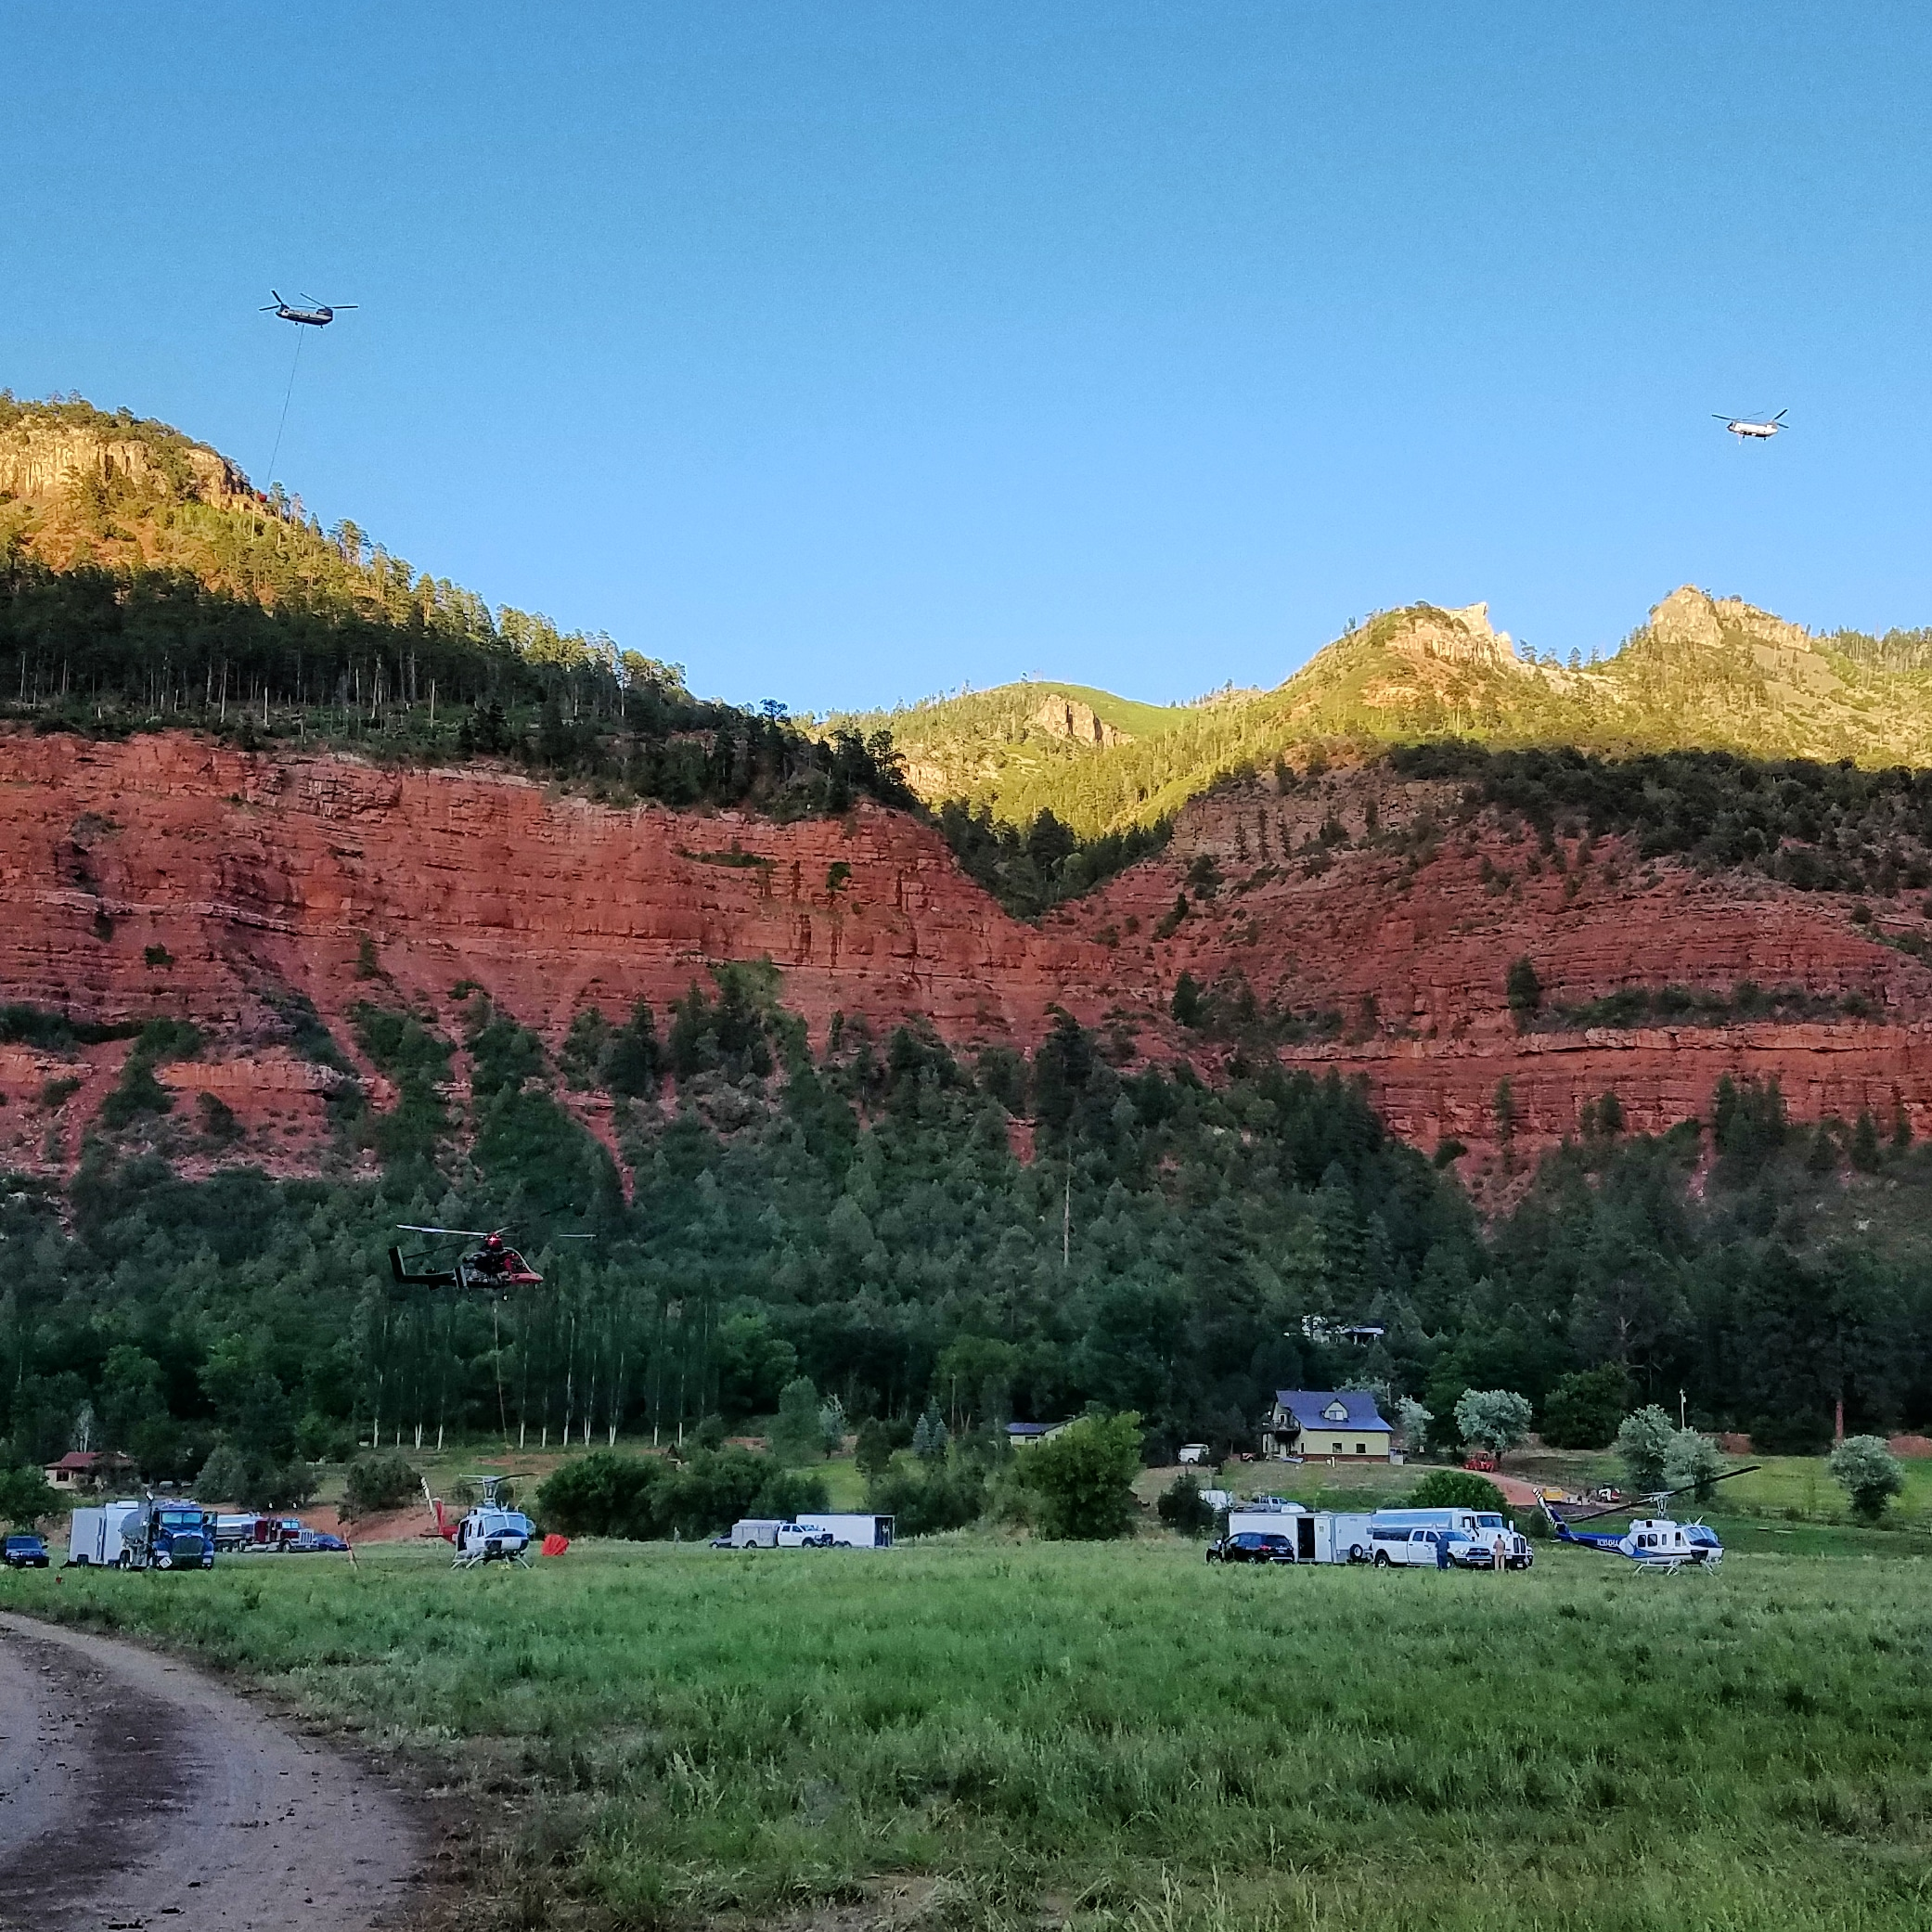 img_20180610_200322_947-jpg.43987_Firefighting in Colorado_Off the Road_Squat the Planet_6:42 PM